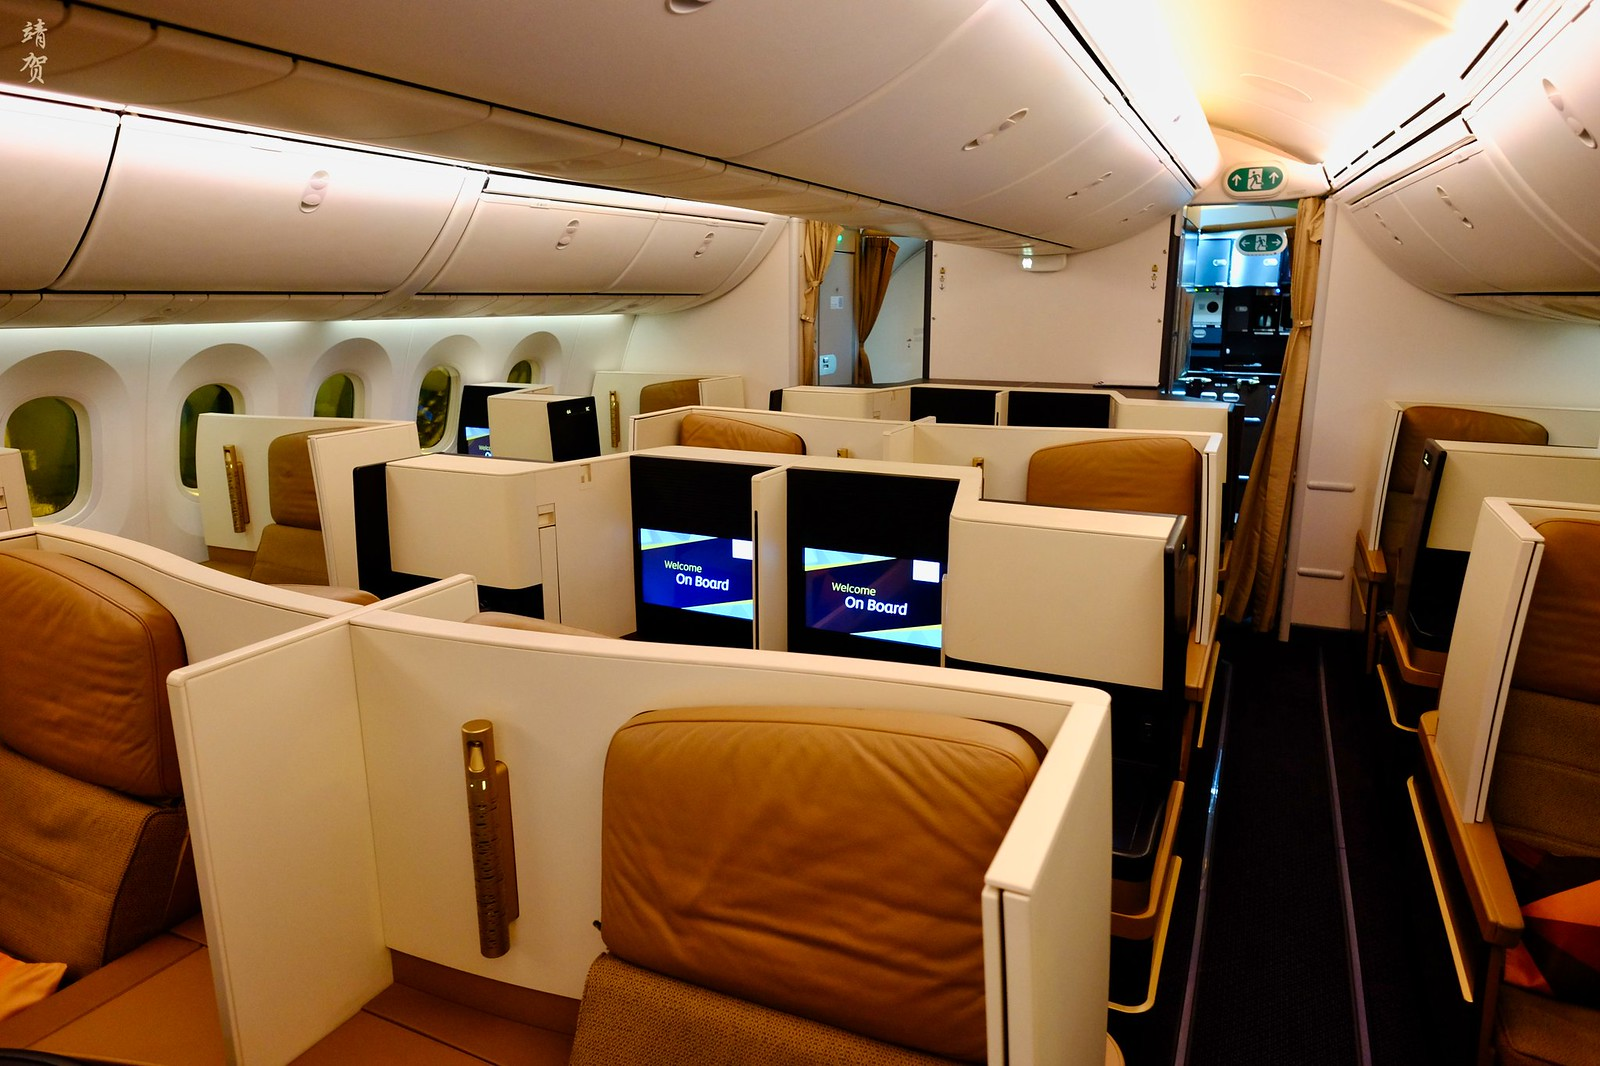 Business Class cabin on the 787